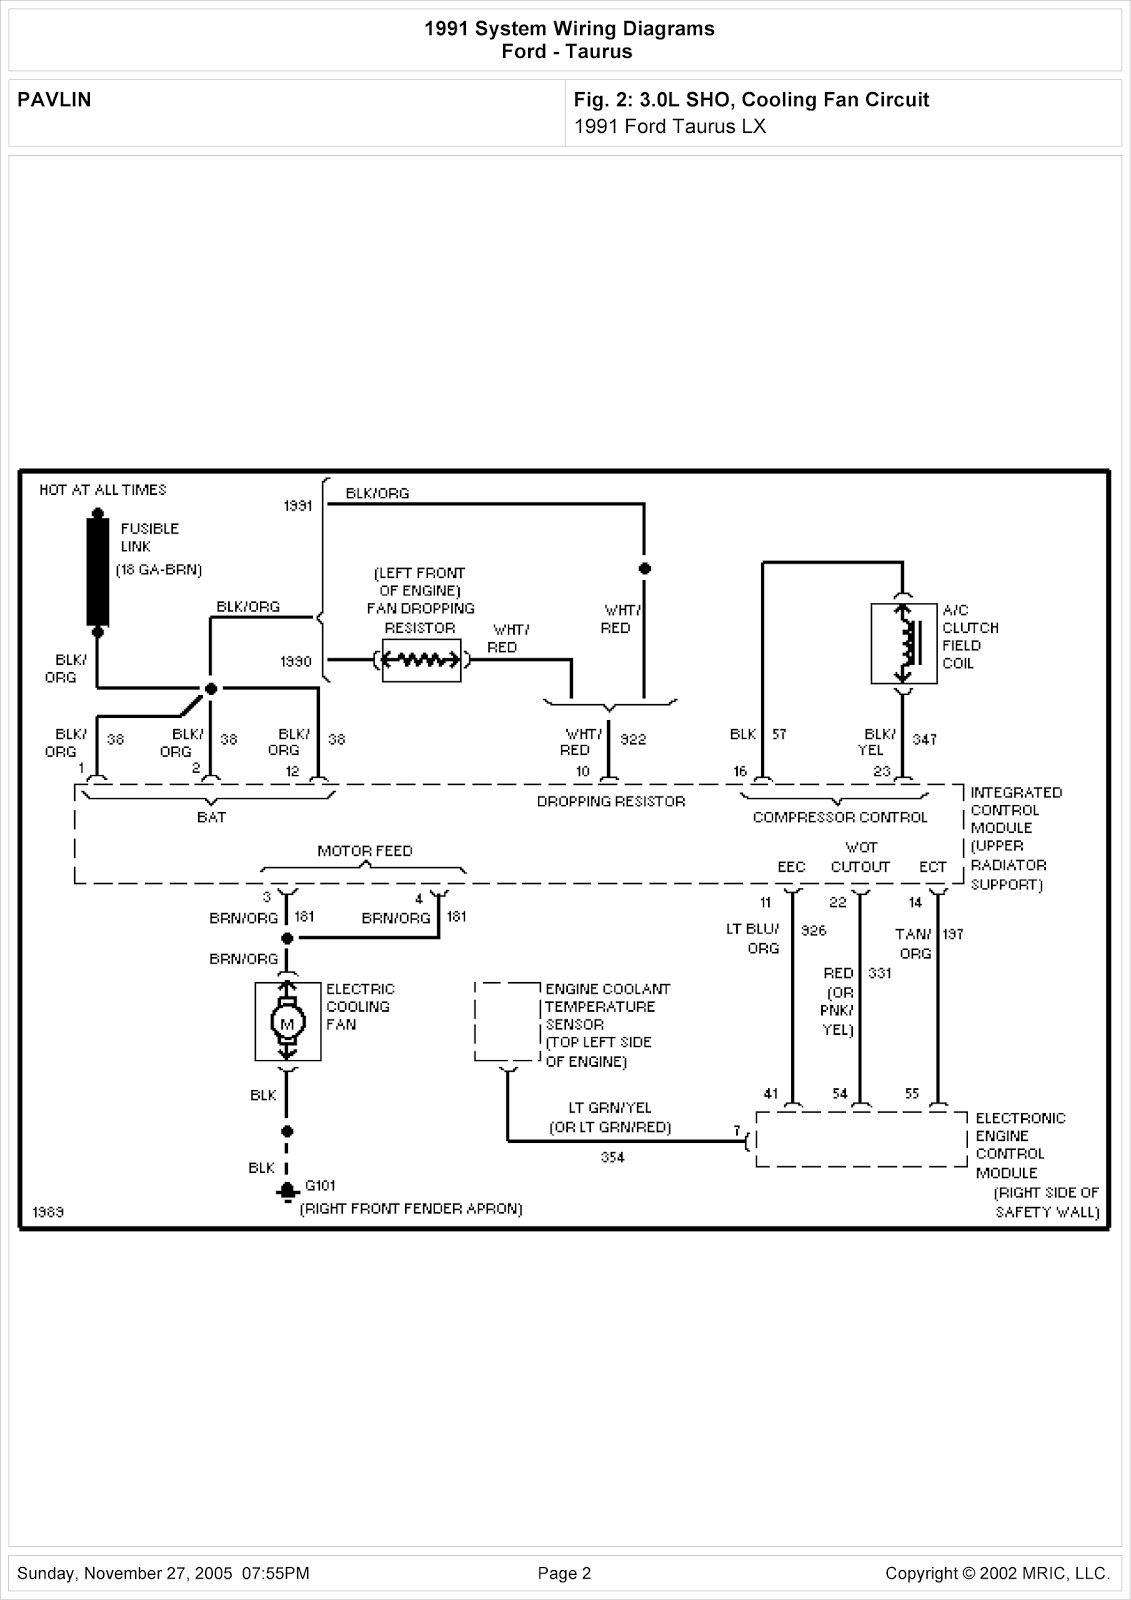 1999 Ford Taurus System Wiring Diagram Cooling Fan Circuit 2013